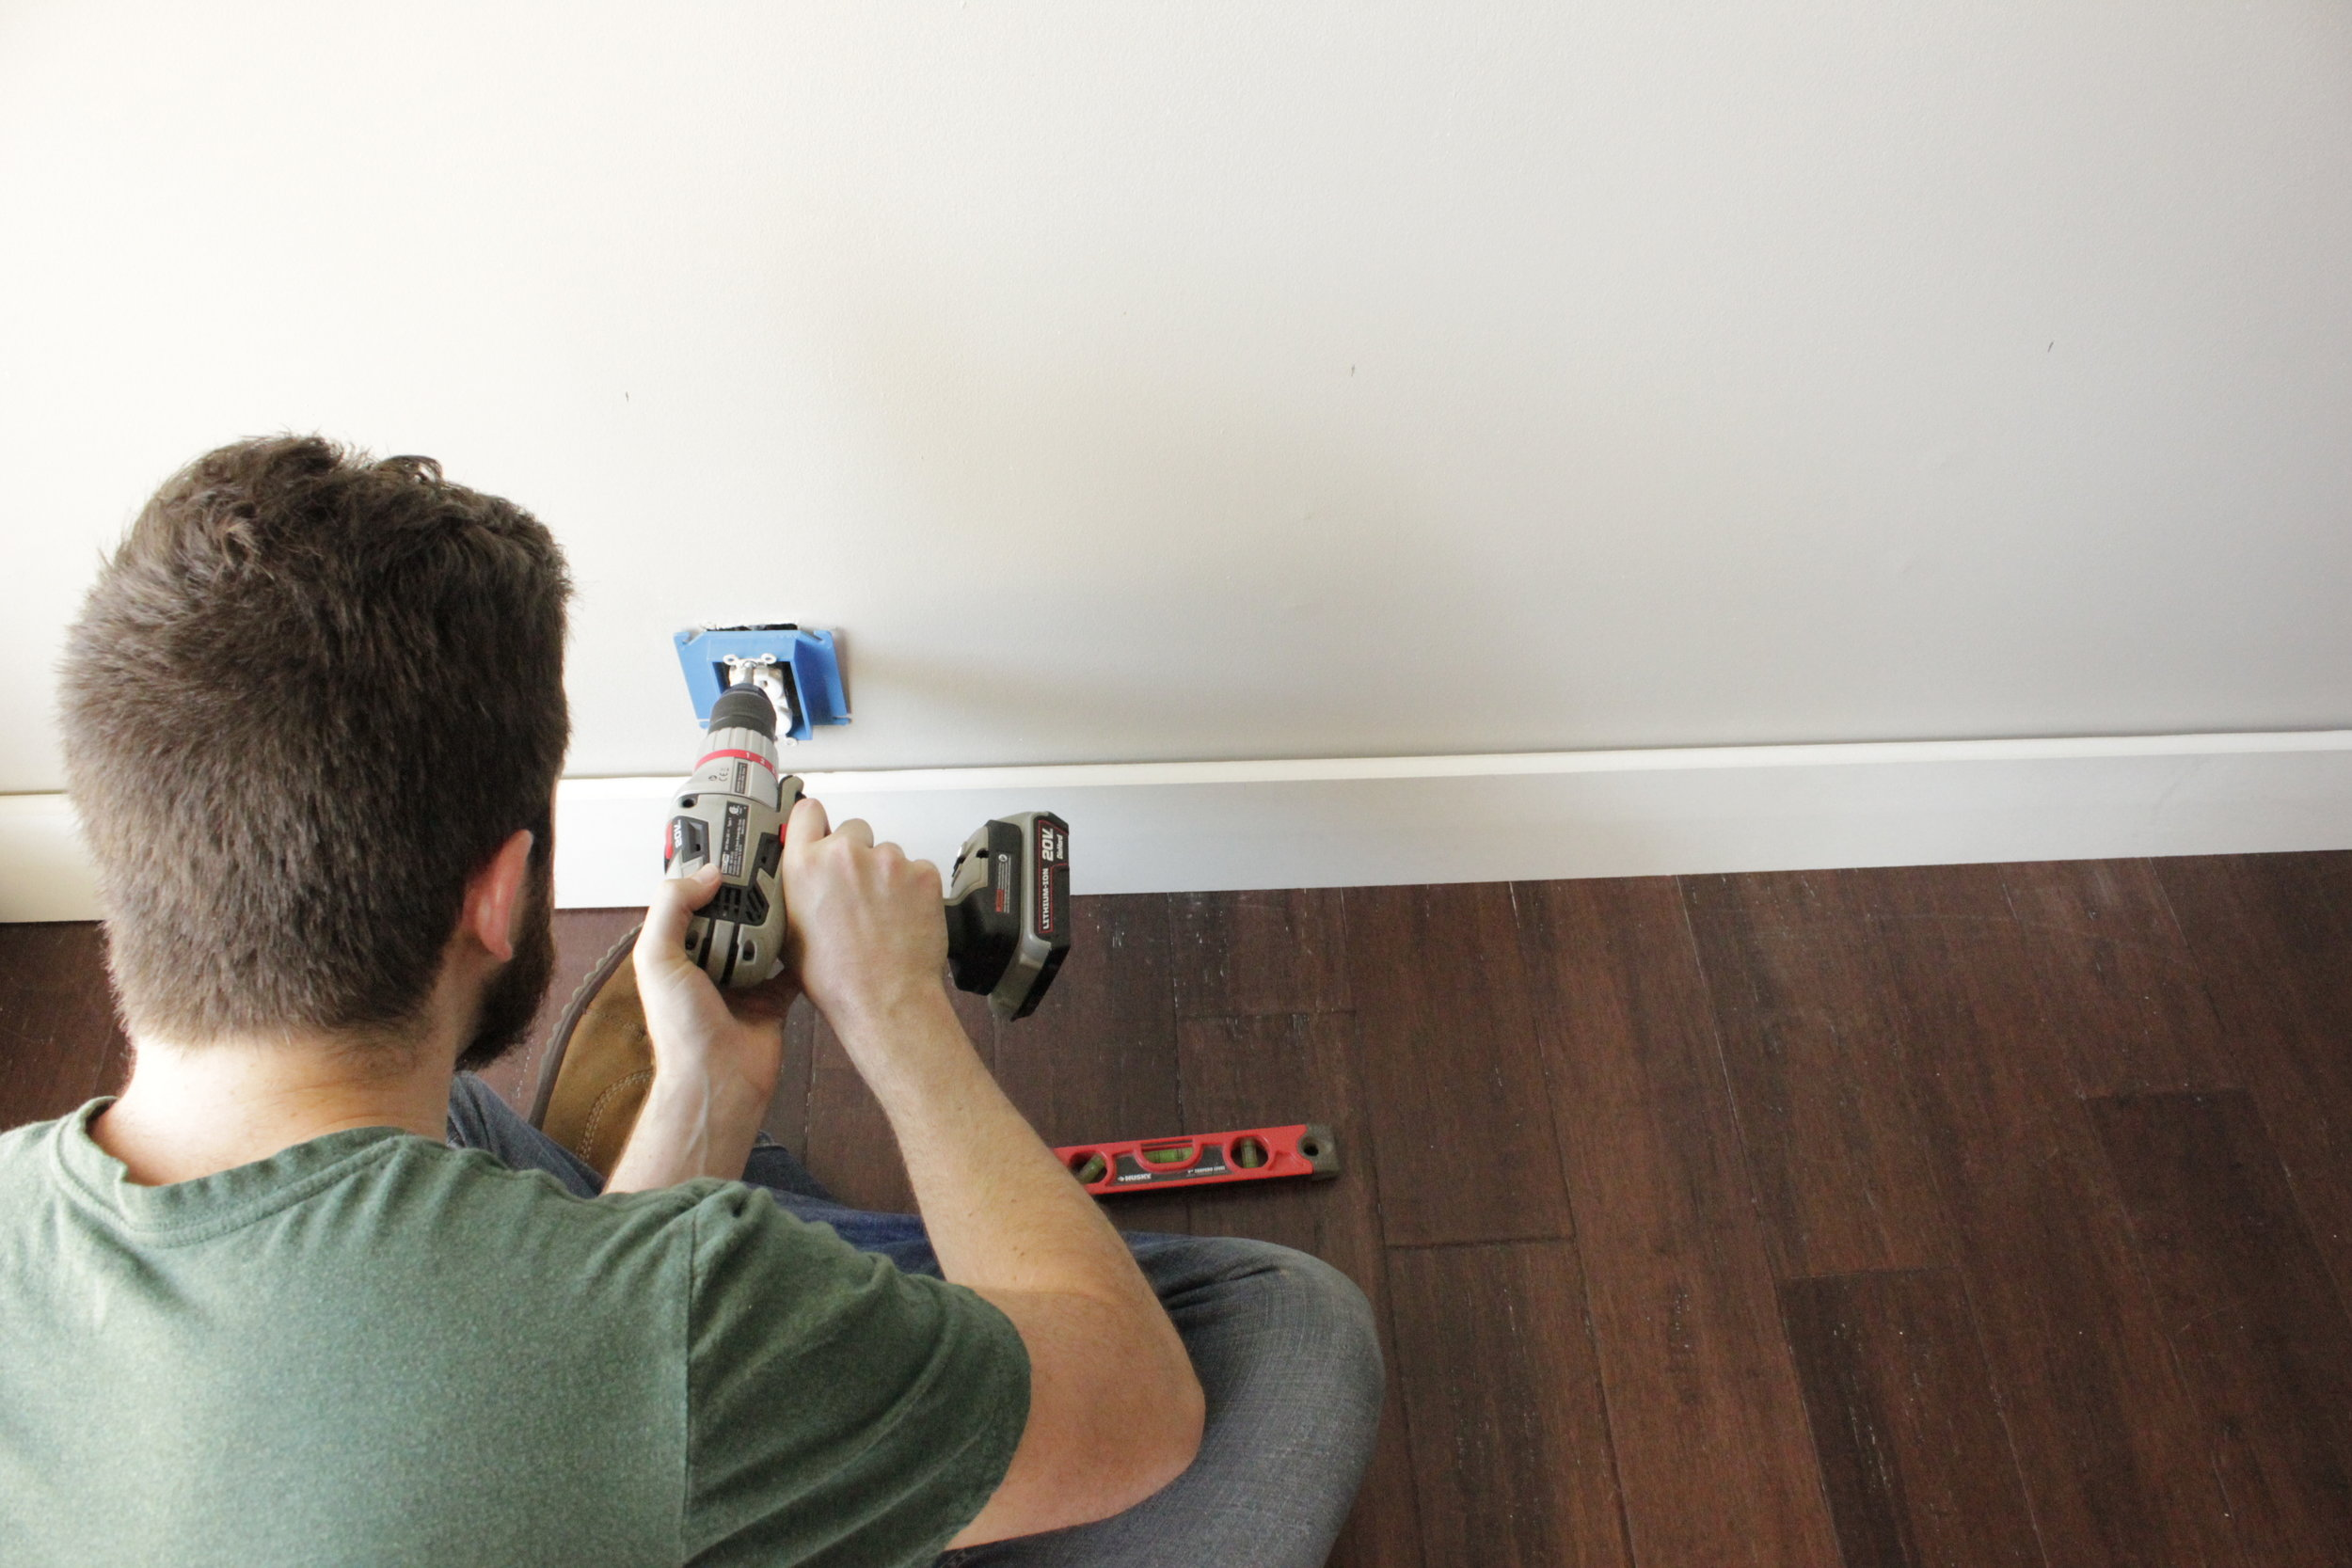 Installing the outlet extenders.